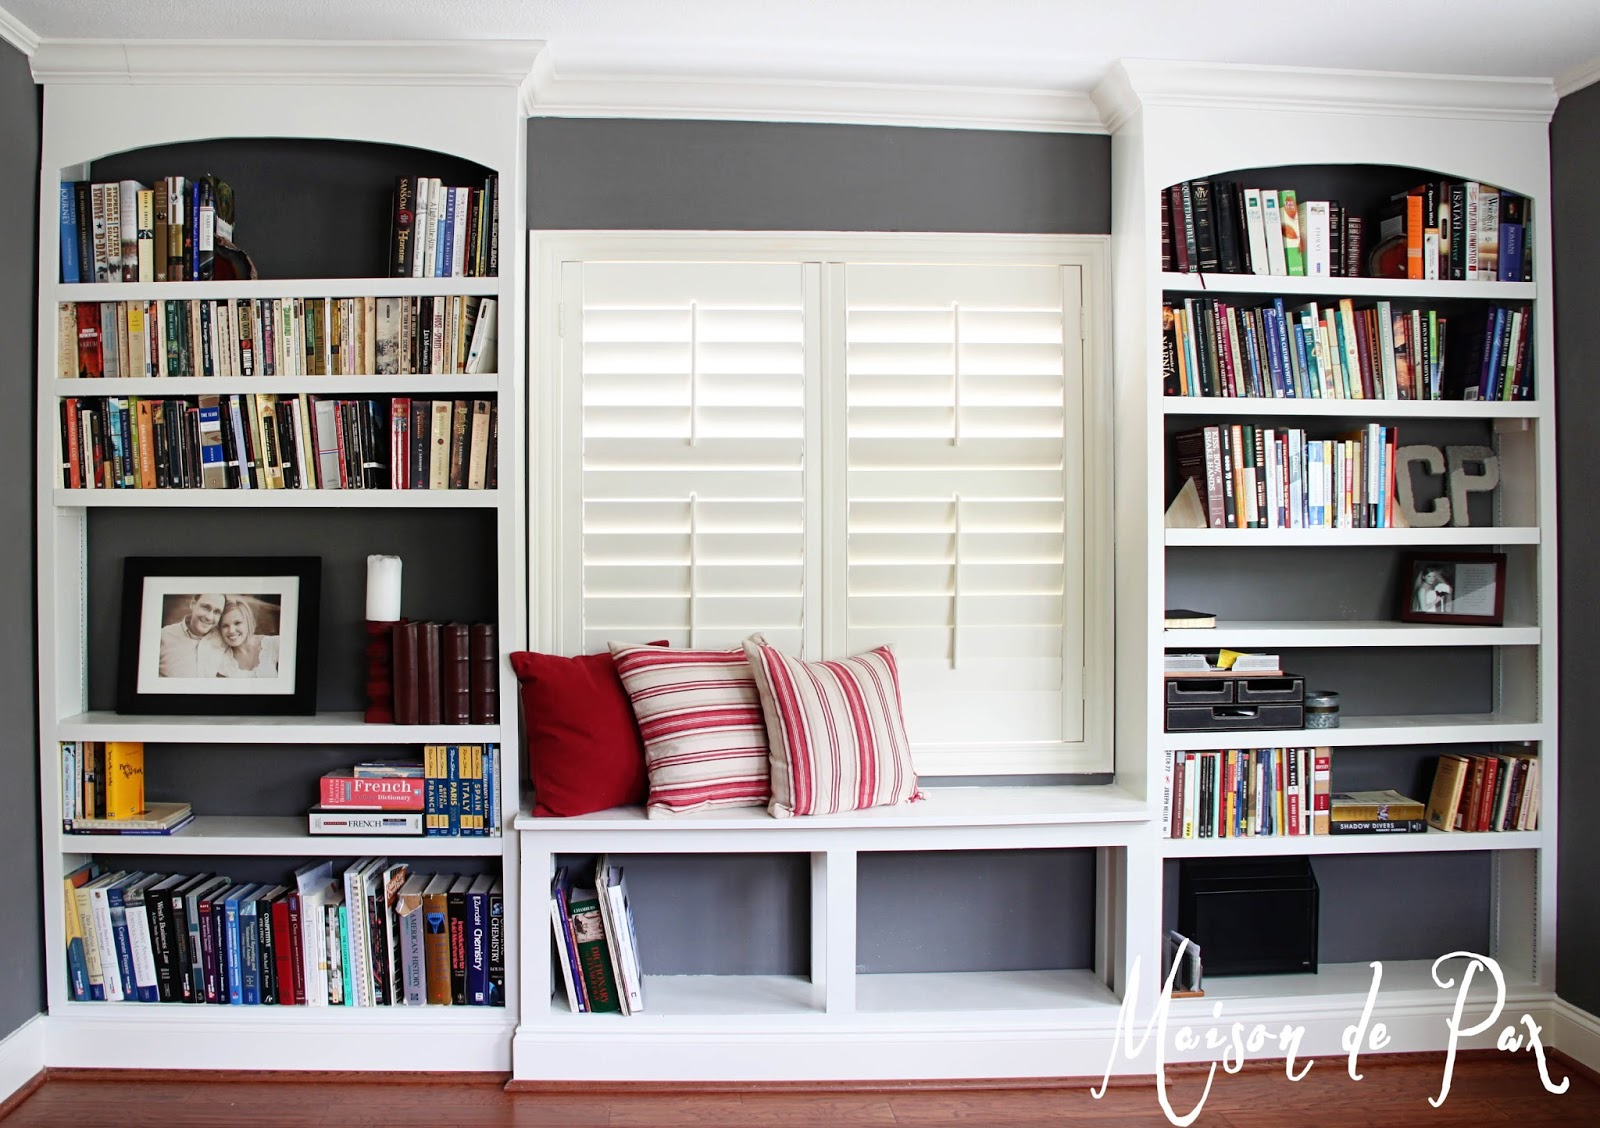 DIY BuiltIn Bookshelves Maison de Pax – Floor To Ceiling Bookshelves Plans